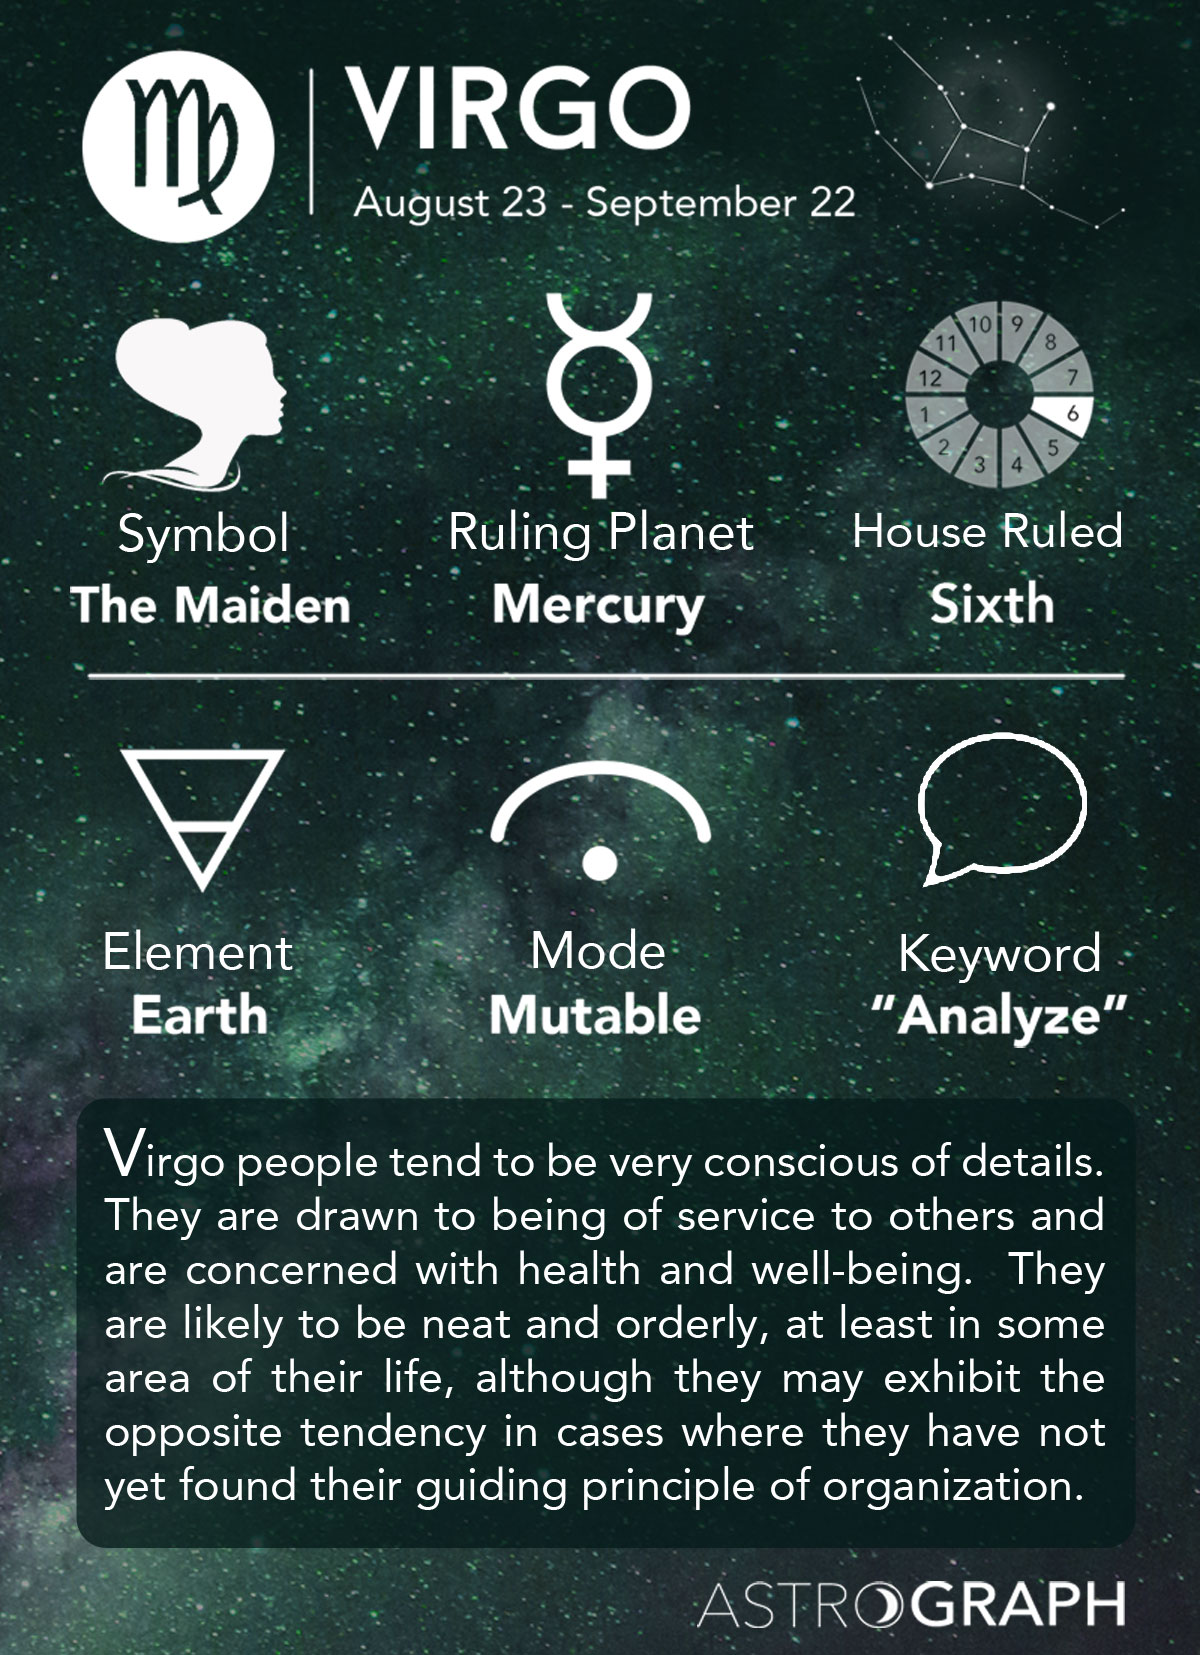 virgo life horoscope